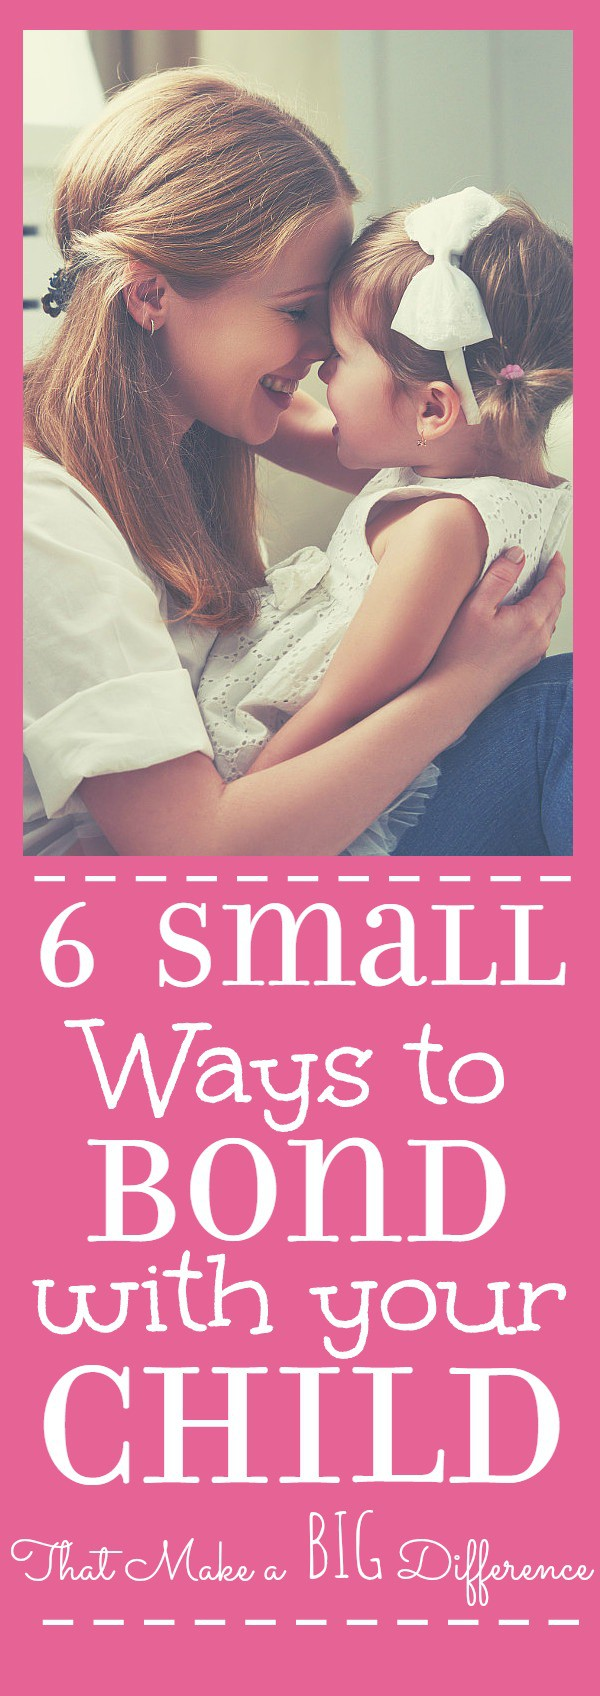 6 Small Ways to Bond With Your Child in a Big Way. Show your child you love, care, and appreciate them with these 6 simple ideas.   parenting